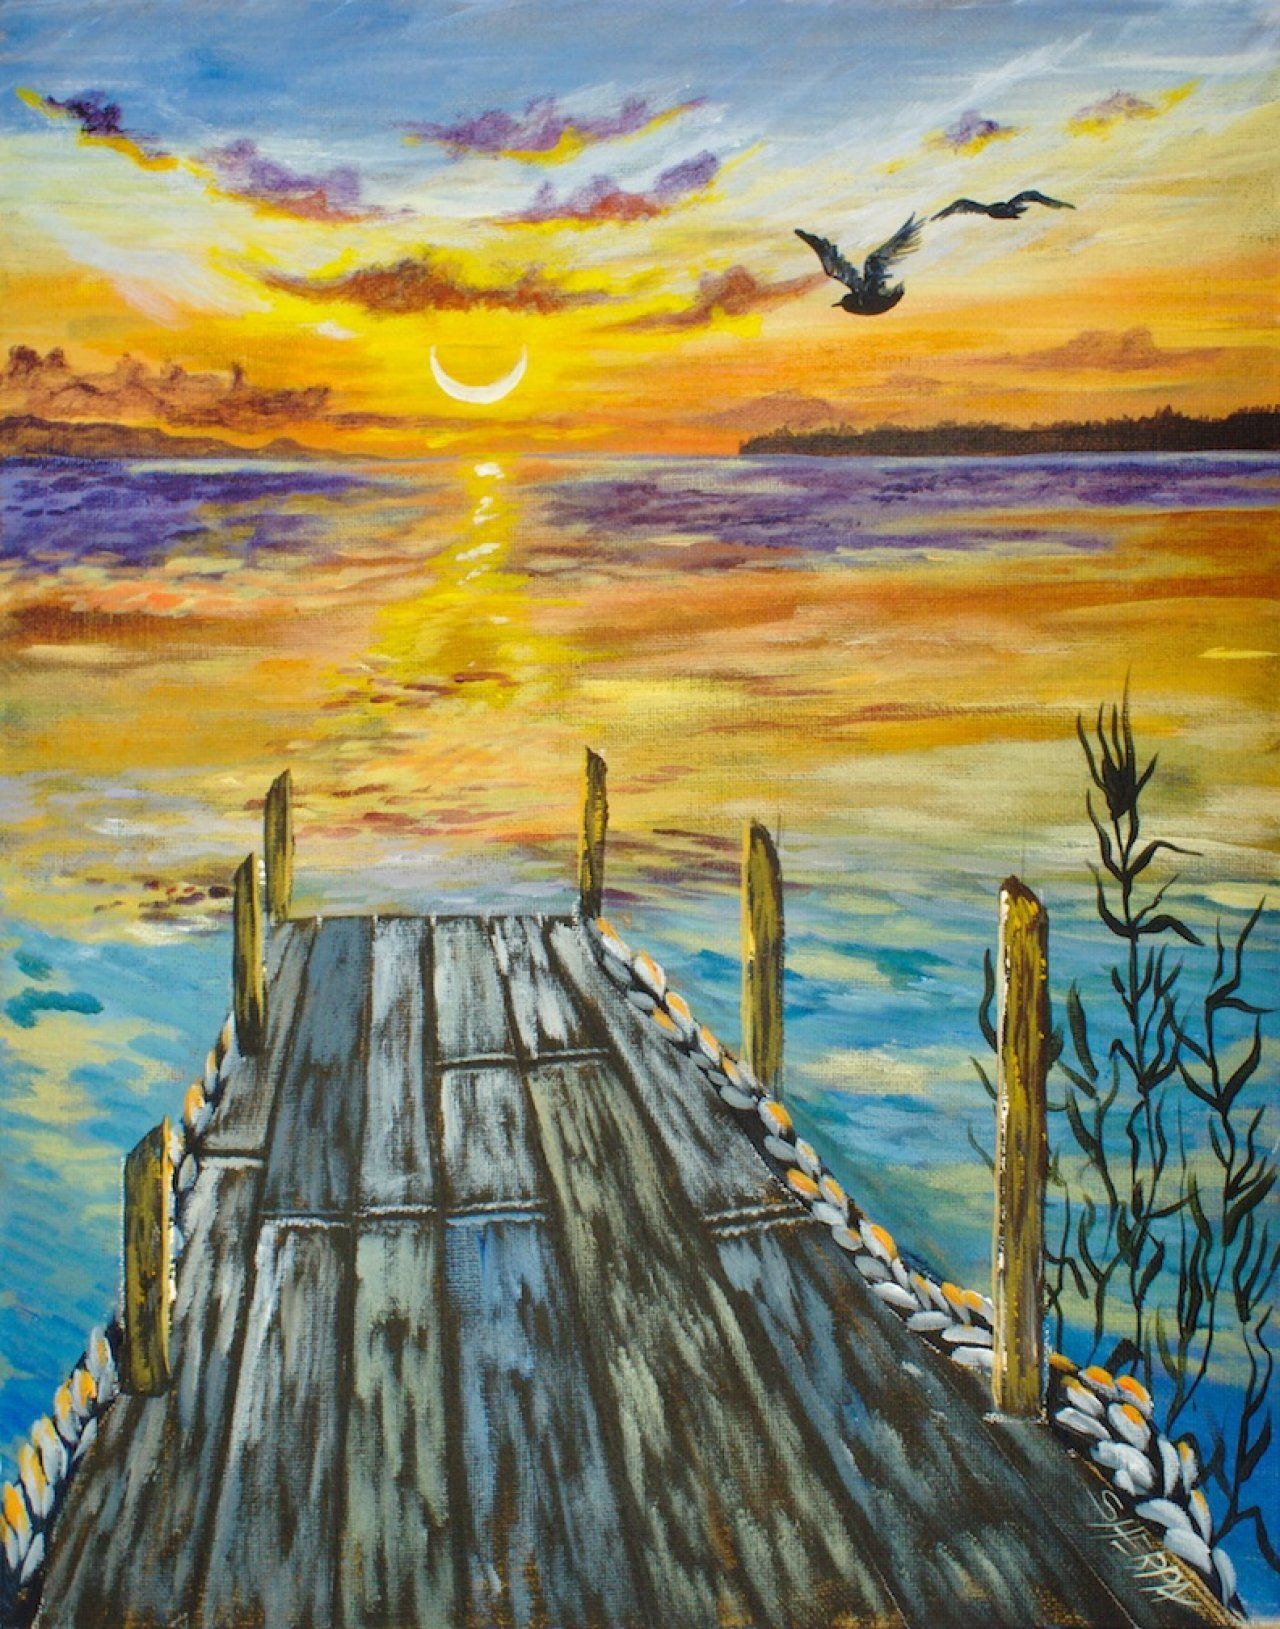 sunset over water with pier